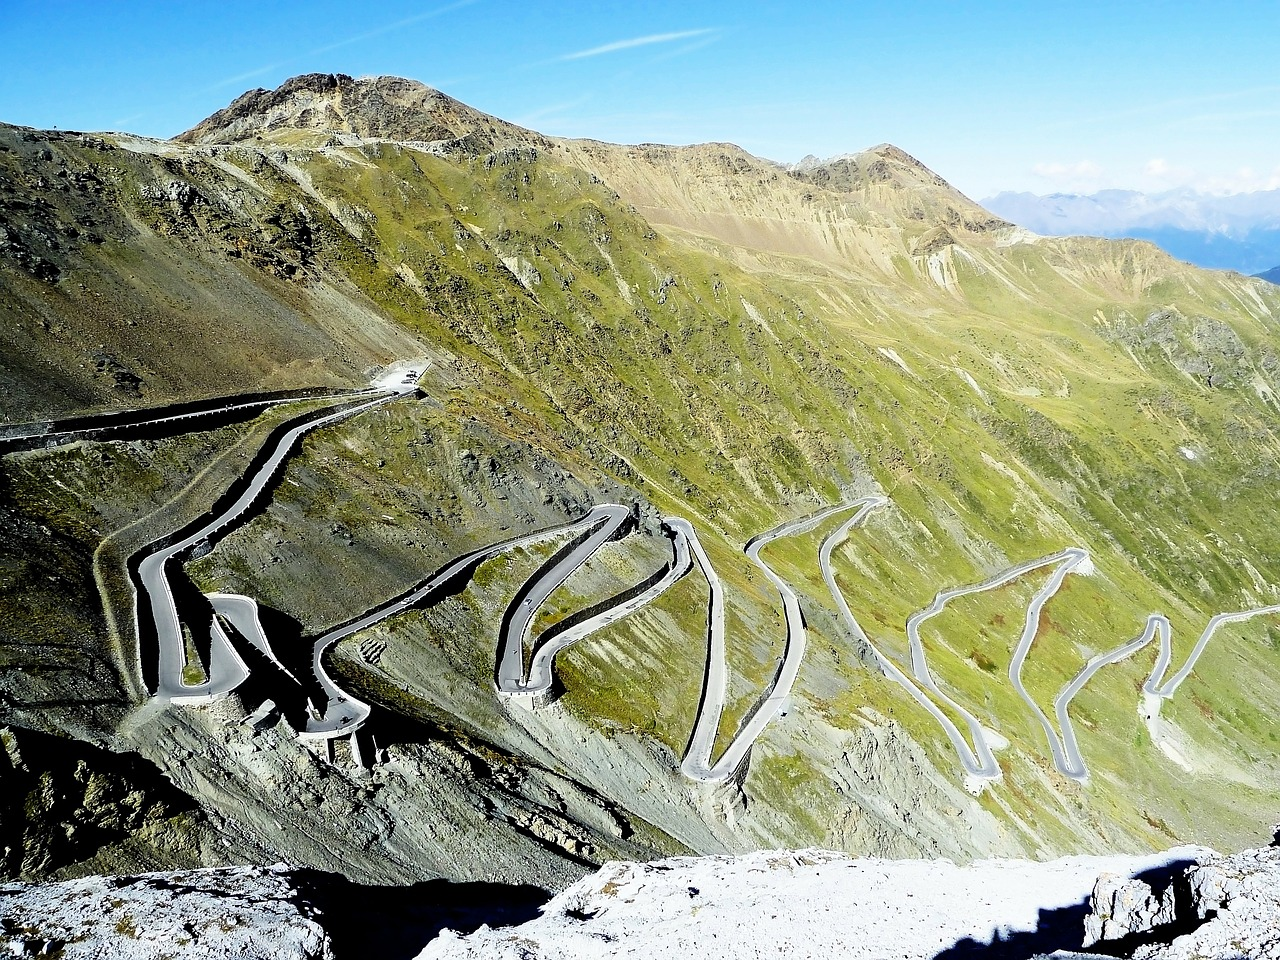 Drive along the most scenic winding roads in the world